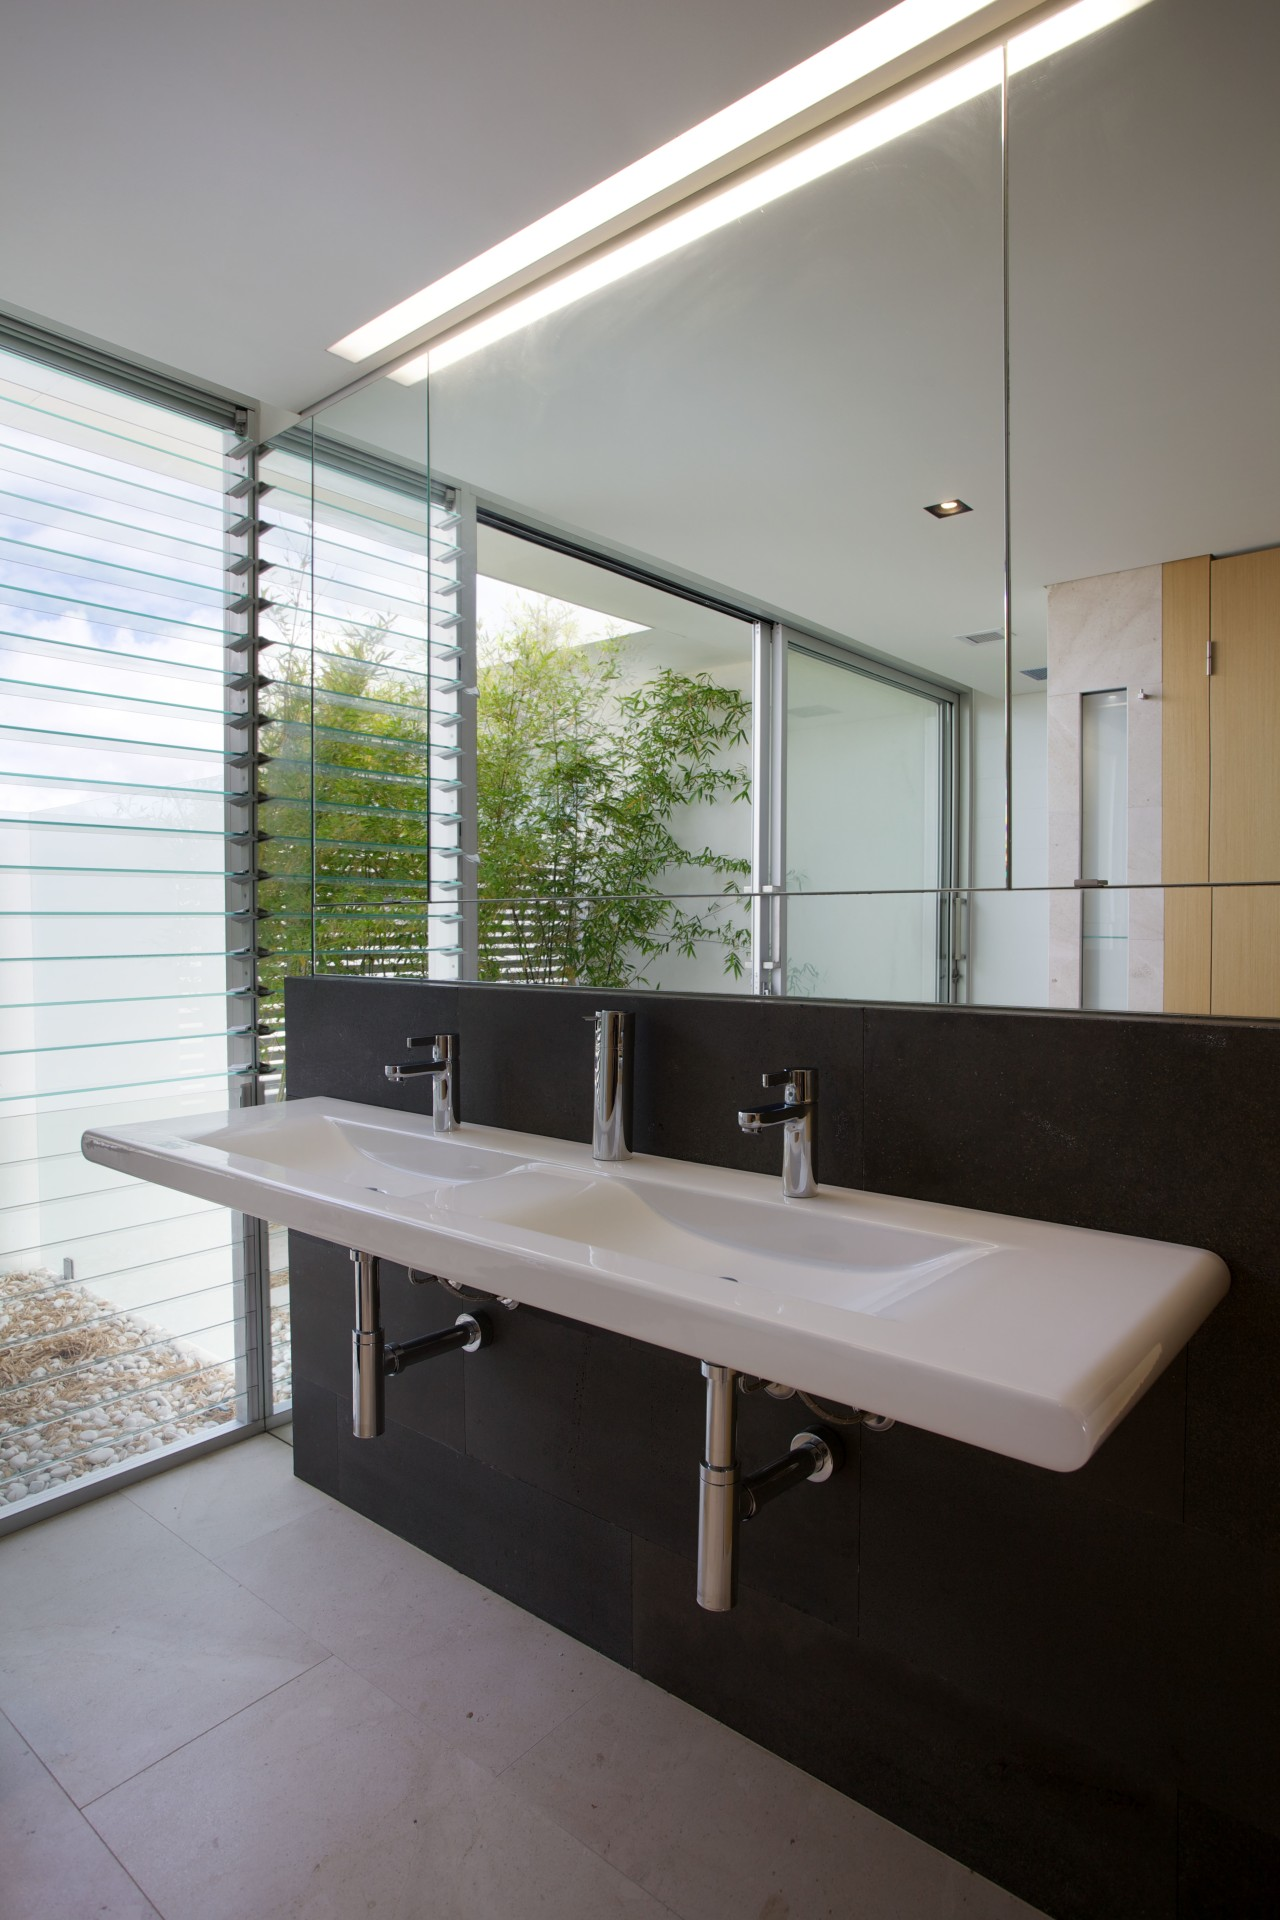 The storage in this ensuite bathroom is on architecture, bathroom, daylighting, glass, house, interior design, sink, window, gray